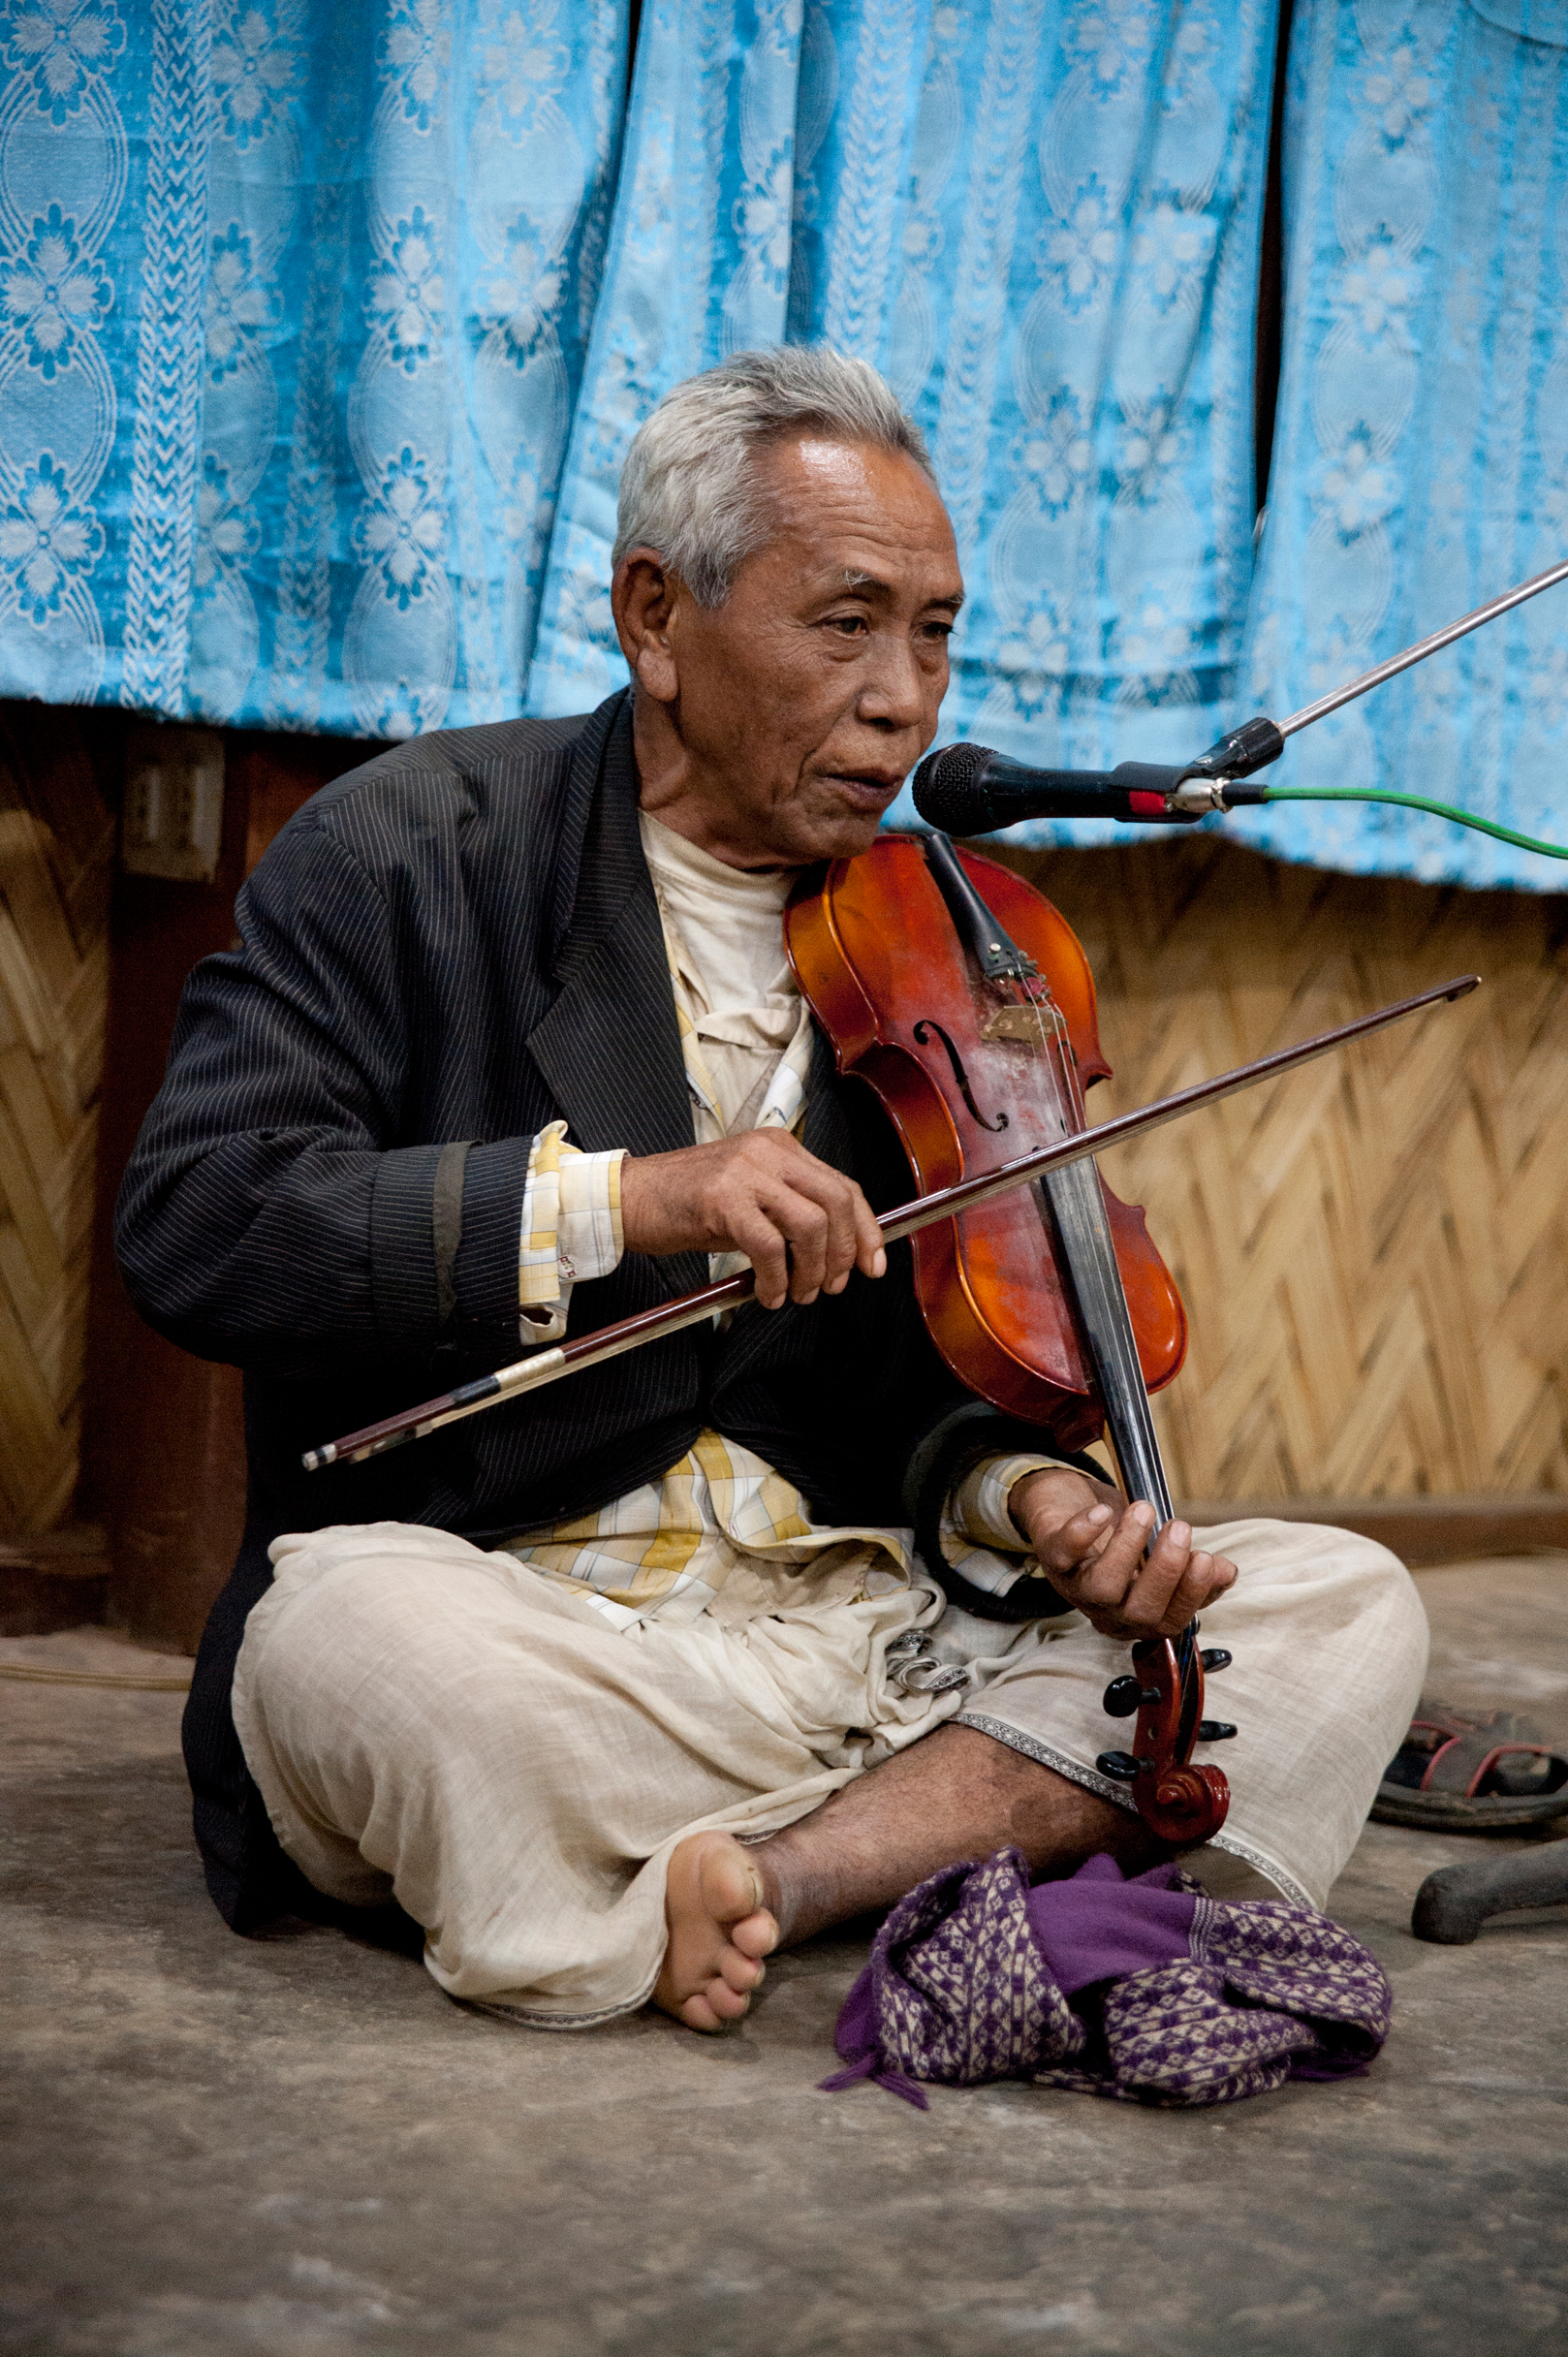 A Chakma tribesman performed his fiddle for us during dinner on Christmas Day, 2012. He is one of the last who continues the Chakma tradition of epic storytelling through music. Photo by Shinobu Suzuki.